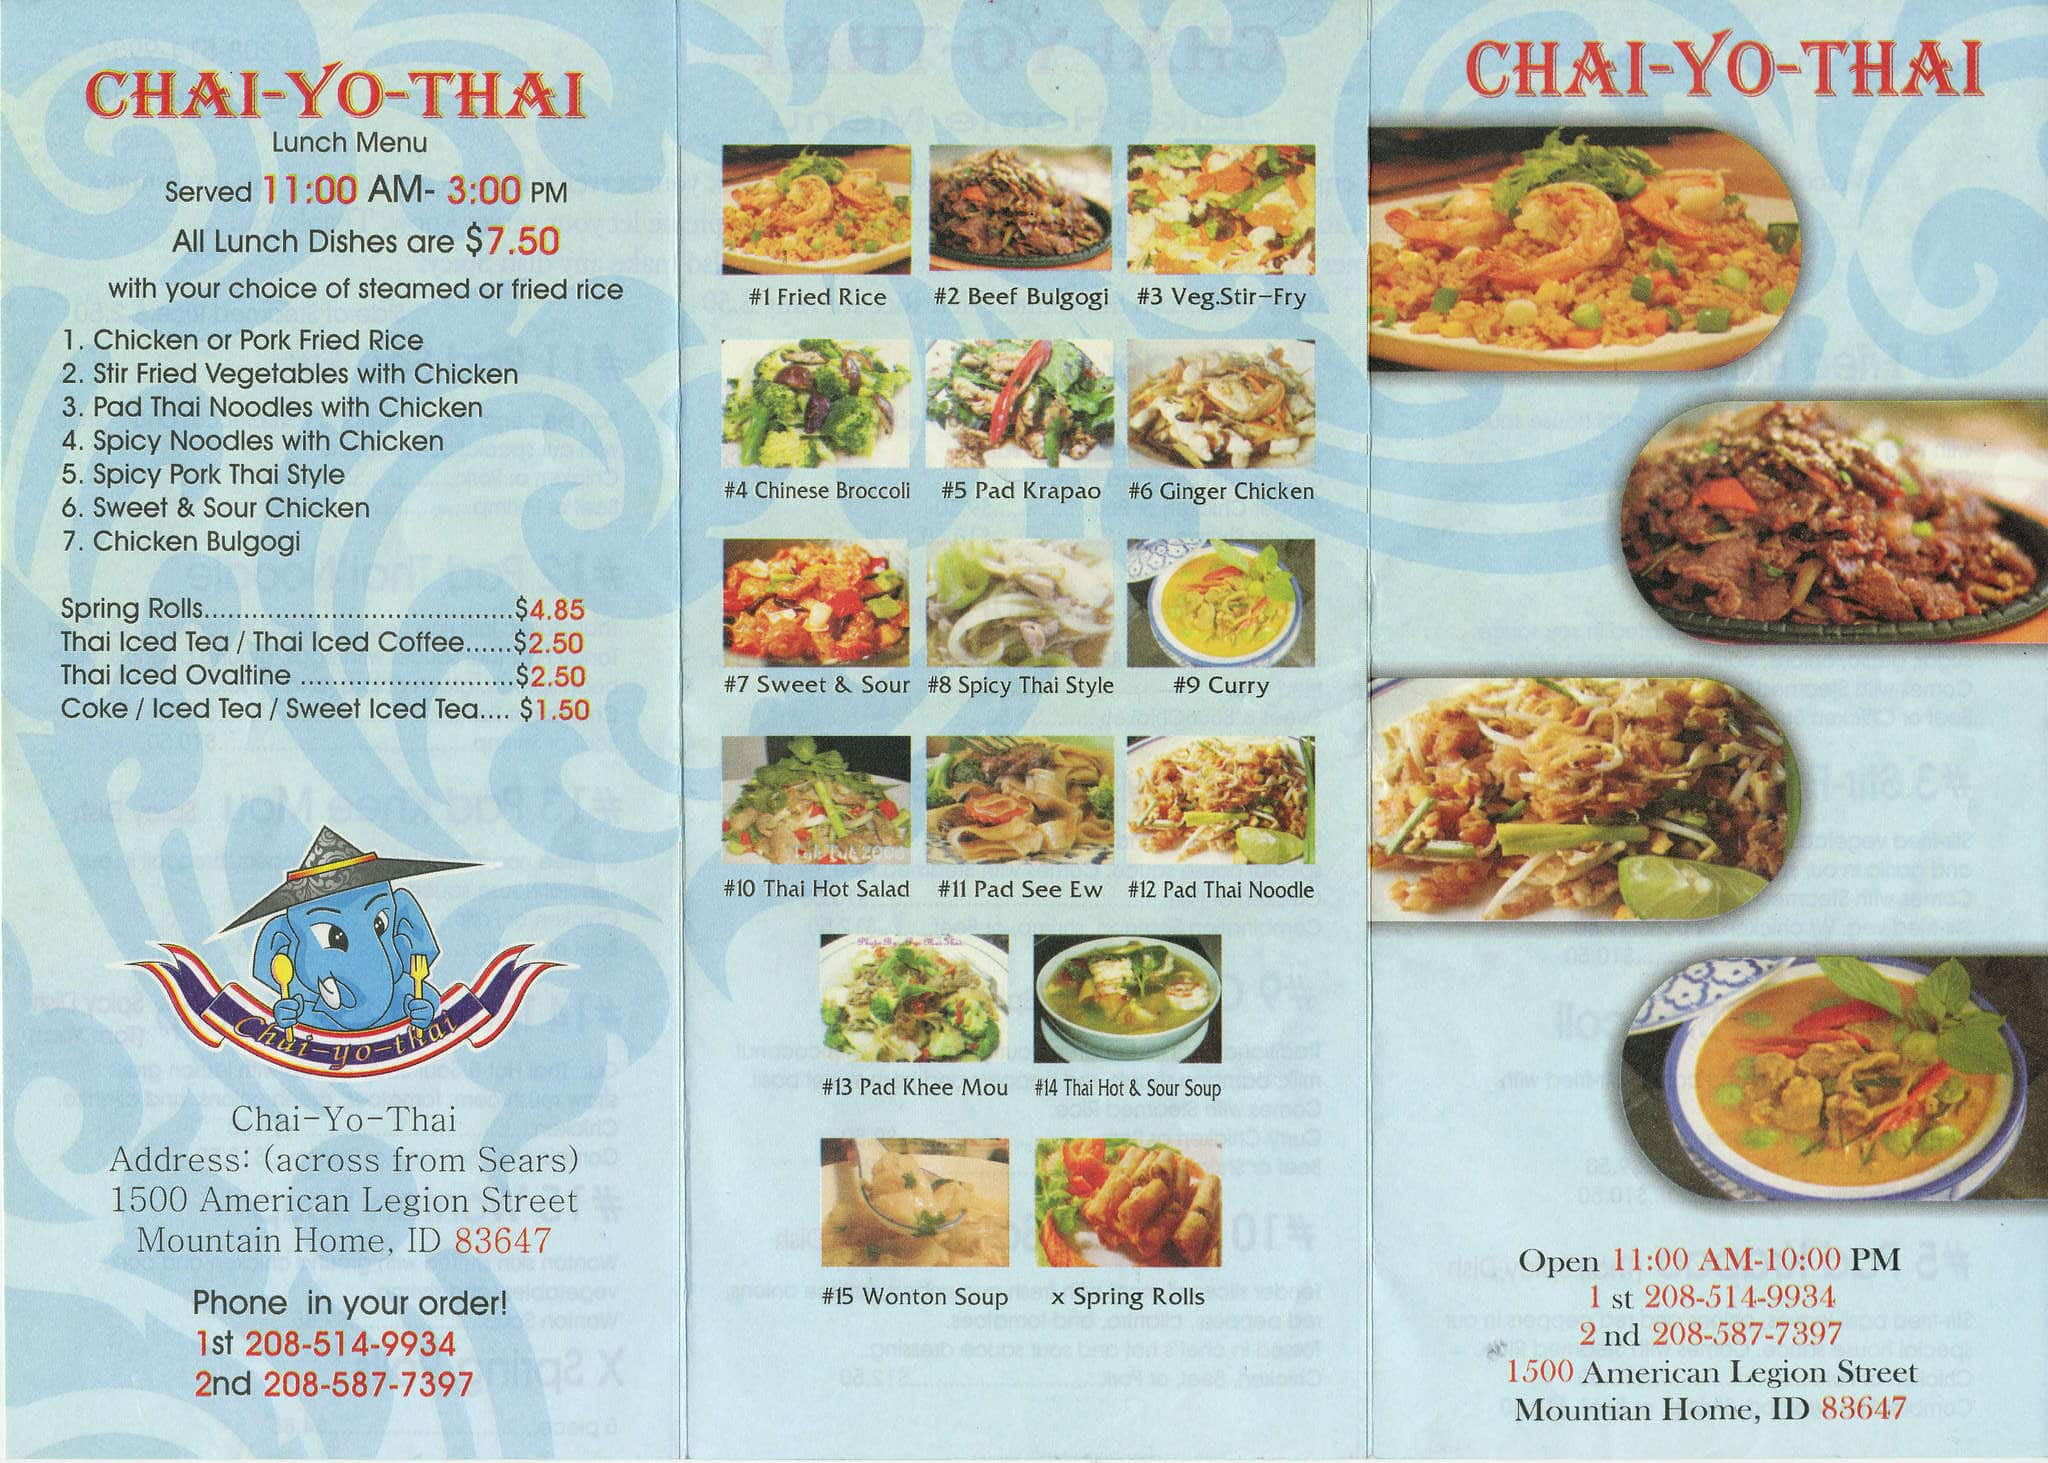 Chai yo thai mountain home menu ideas.